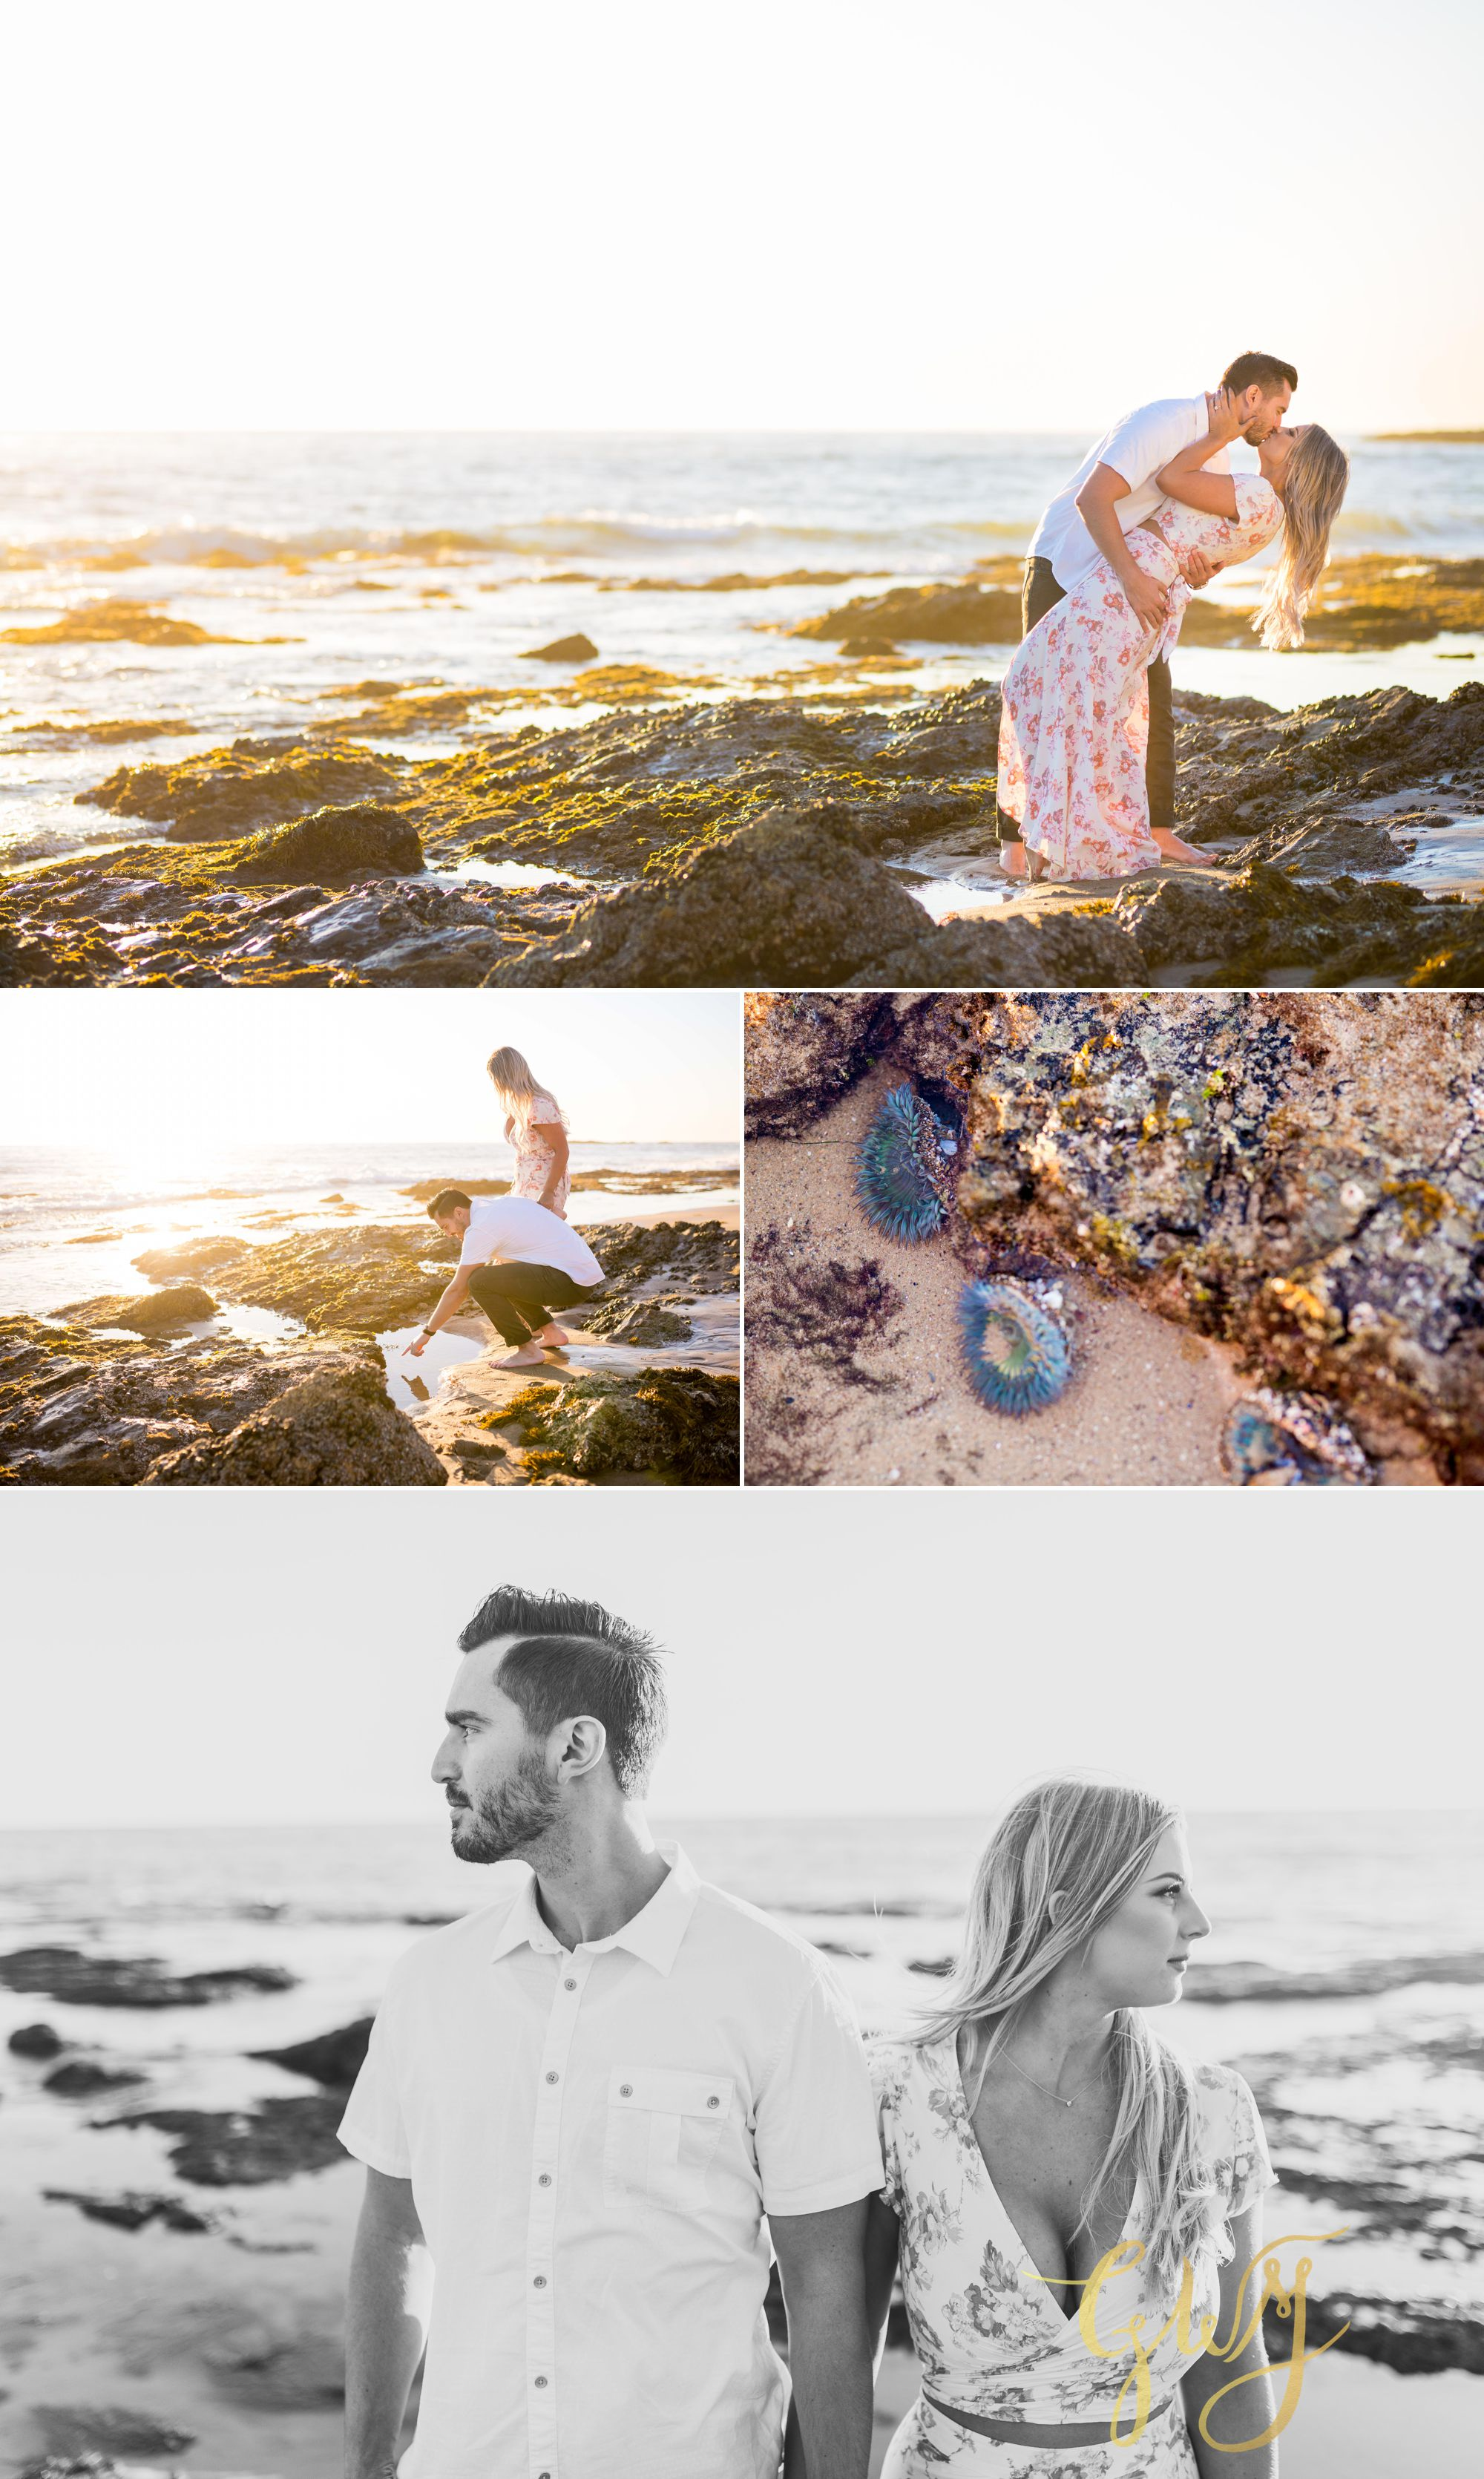 Christien + Crystal Back Bay Newport Crystal Cove Reef Point Sunset Engagement Portrait Session by Glass Woods Media 15.jpg